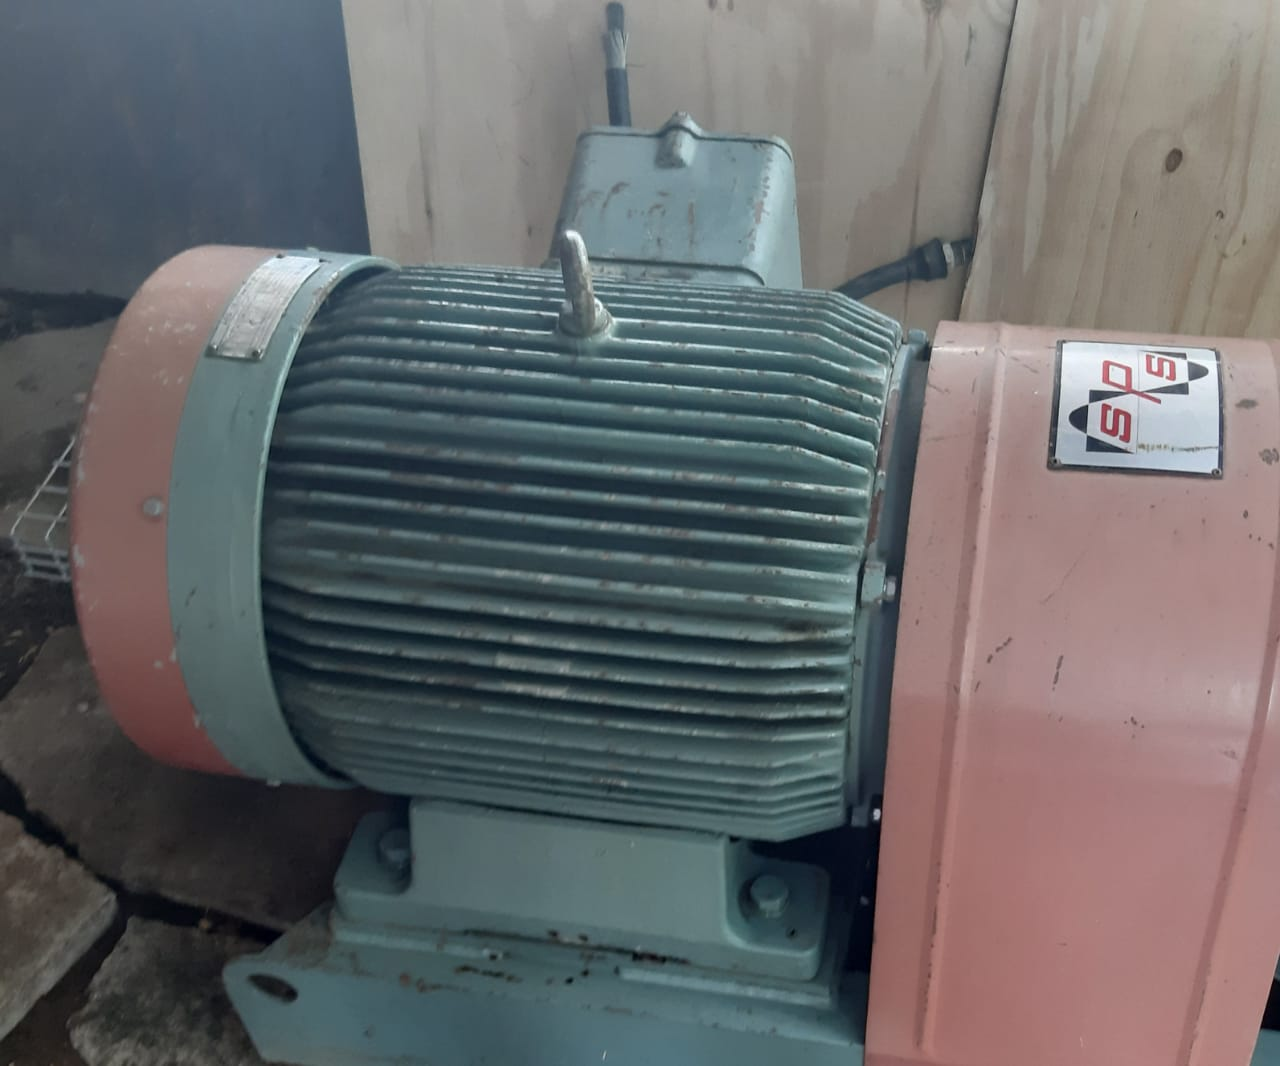 55 kW Motor, 4 Pole, 3 Phase, 380V AEG Industrial Motor.  Still in very good condition.  Collection for buyer account.  Price negotialble.